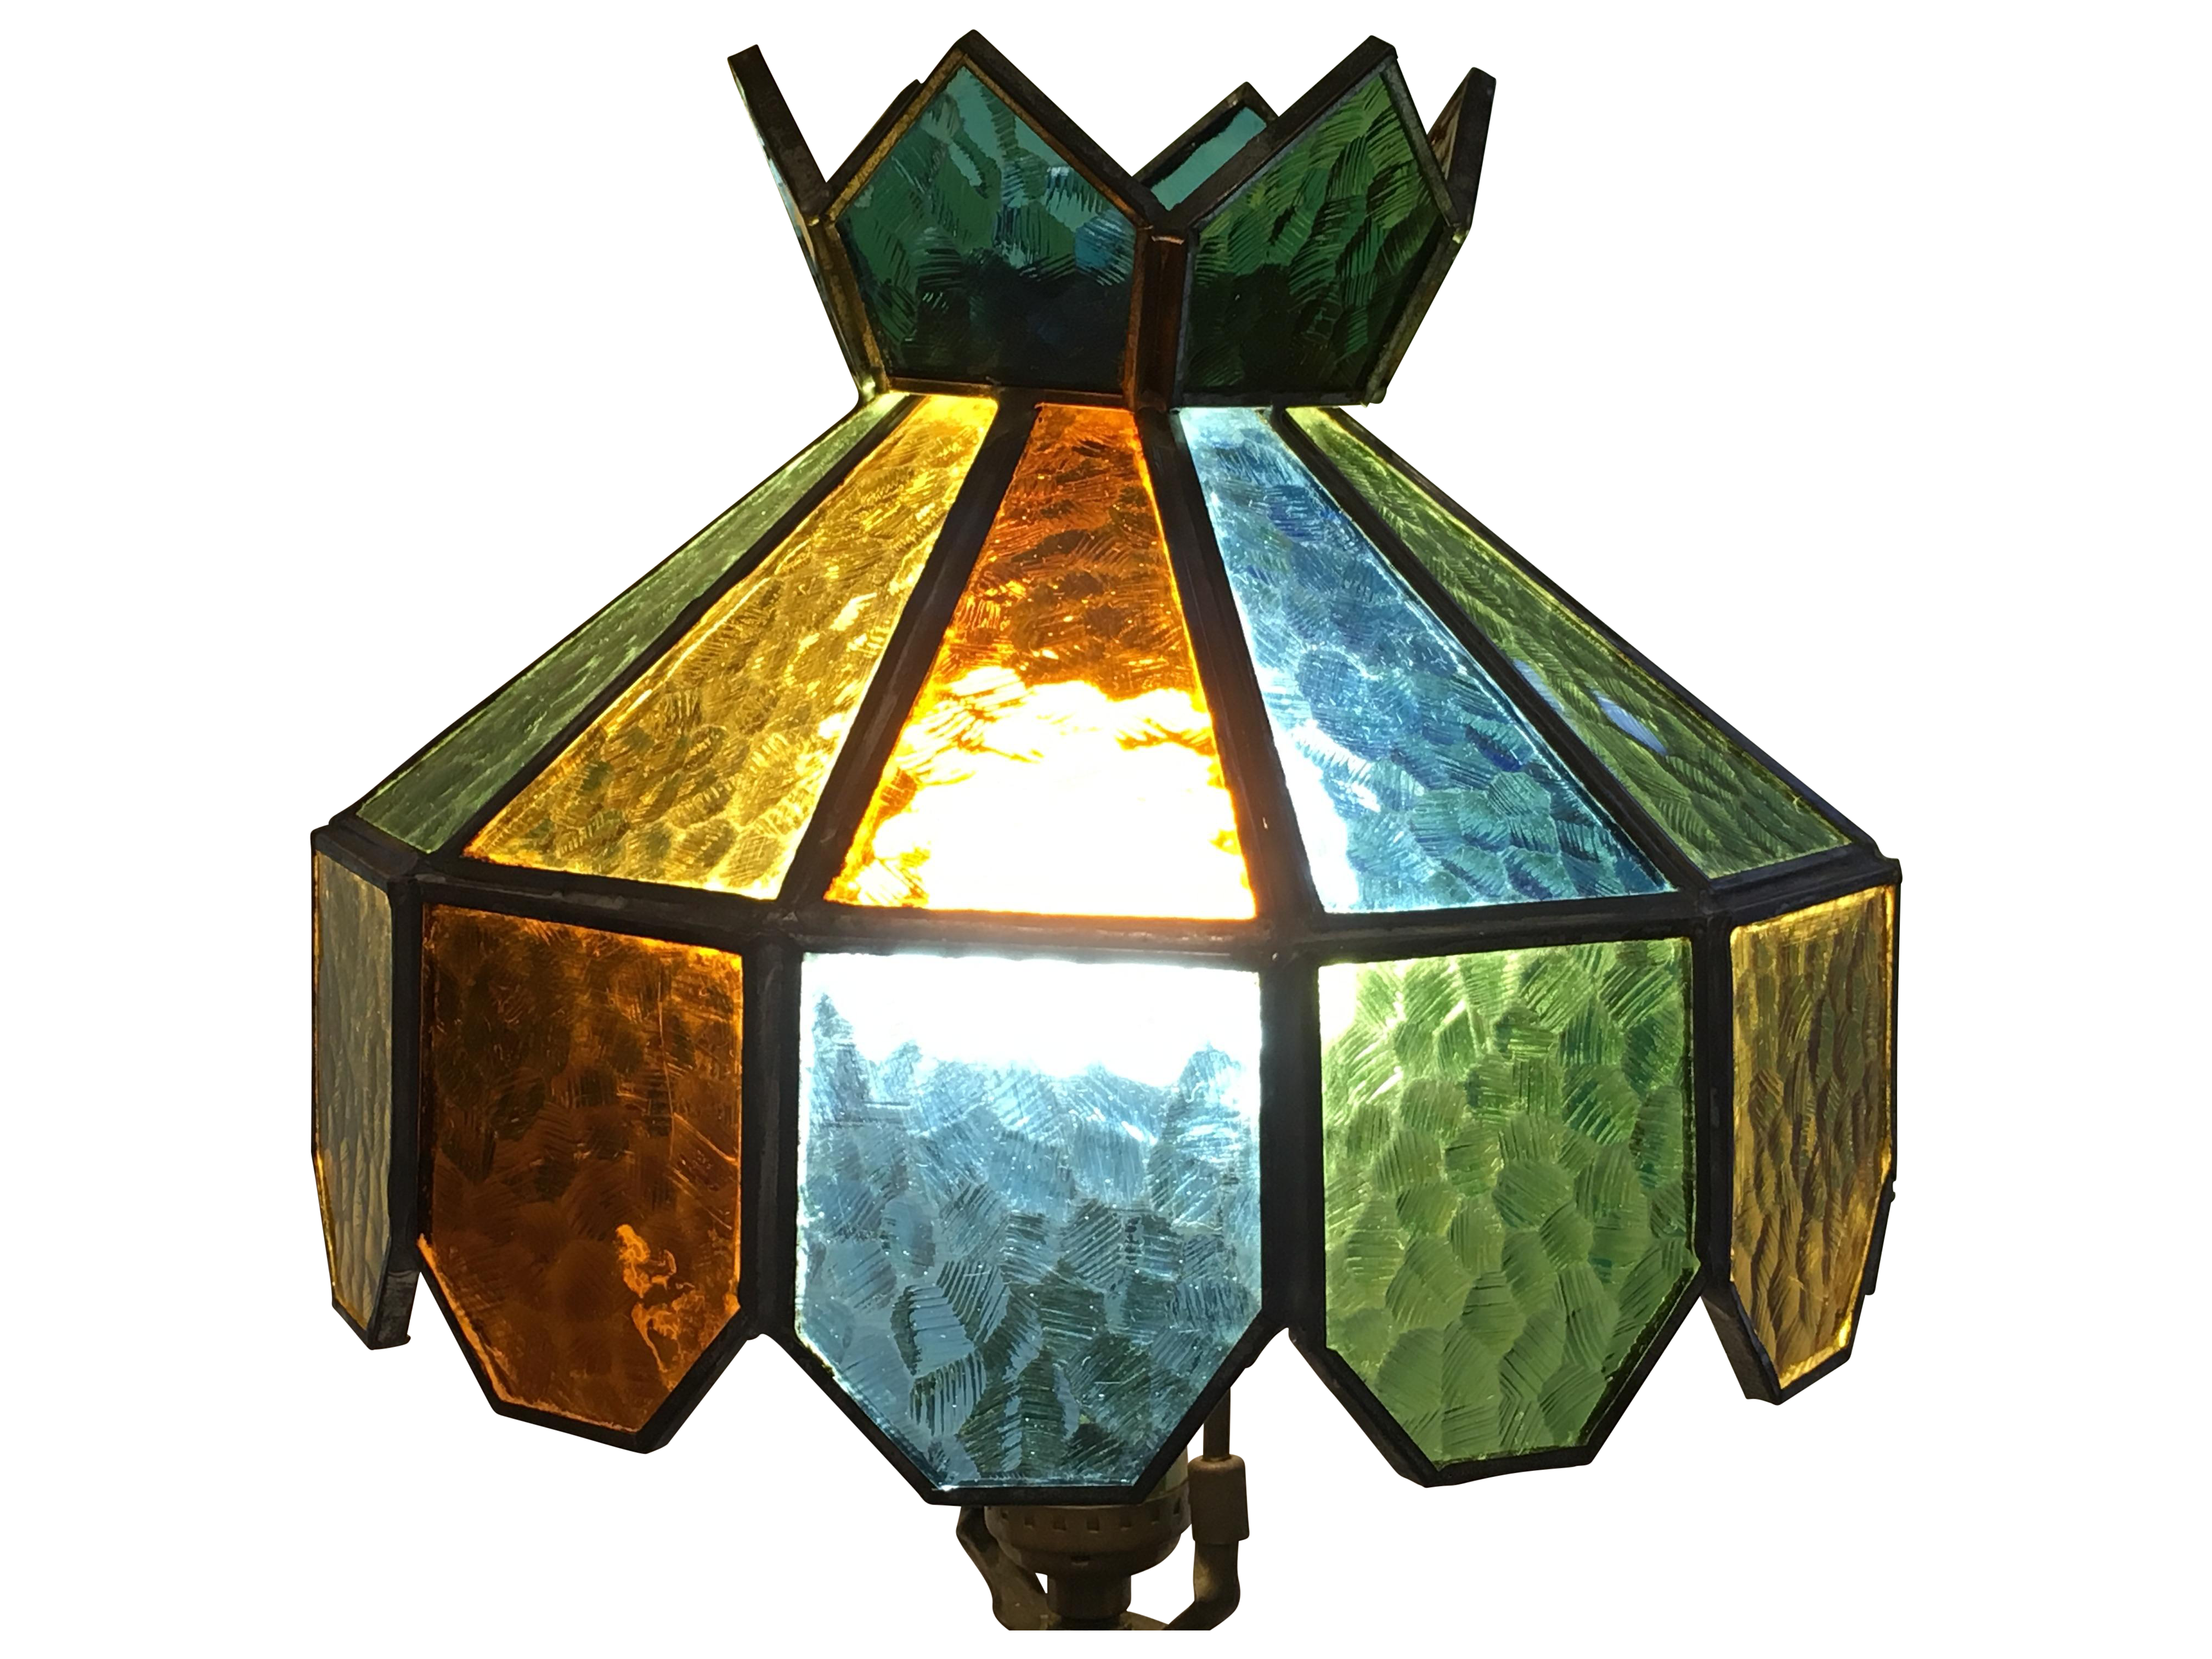 lighting news themes shades with both sale make to of stained renderings continues different floral were tiffany precise for blossoms magazine lamp glass windows century style and magical lamps popular